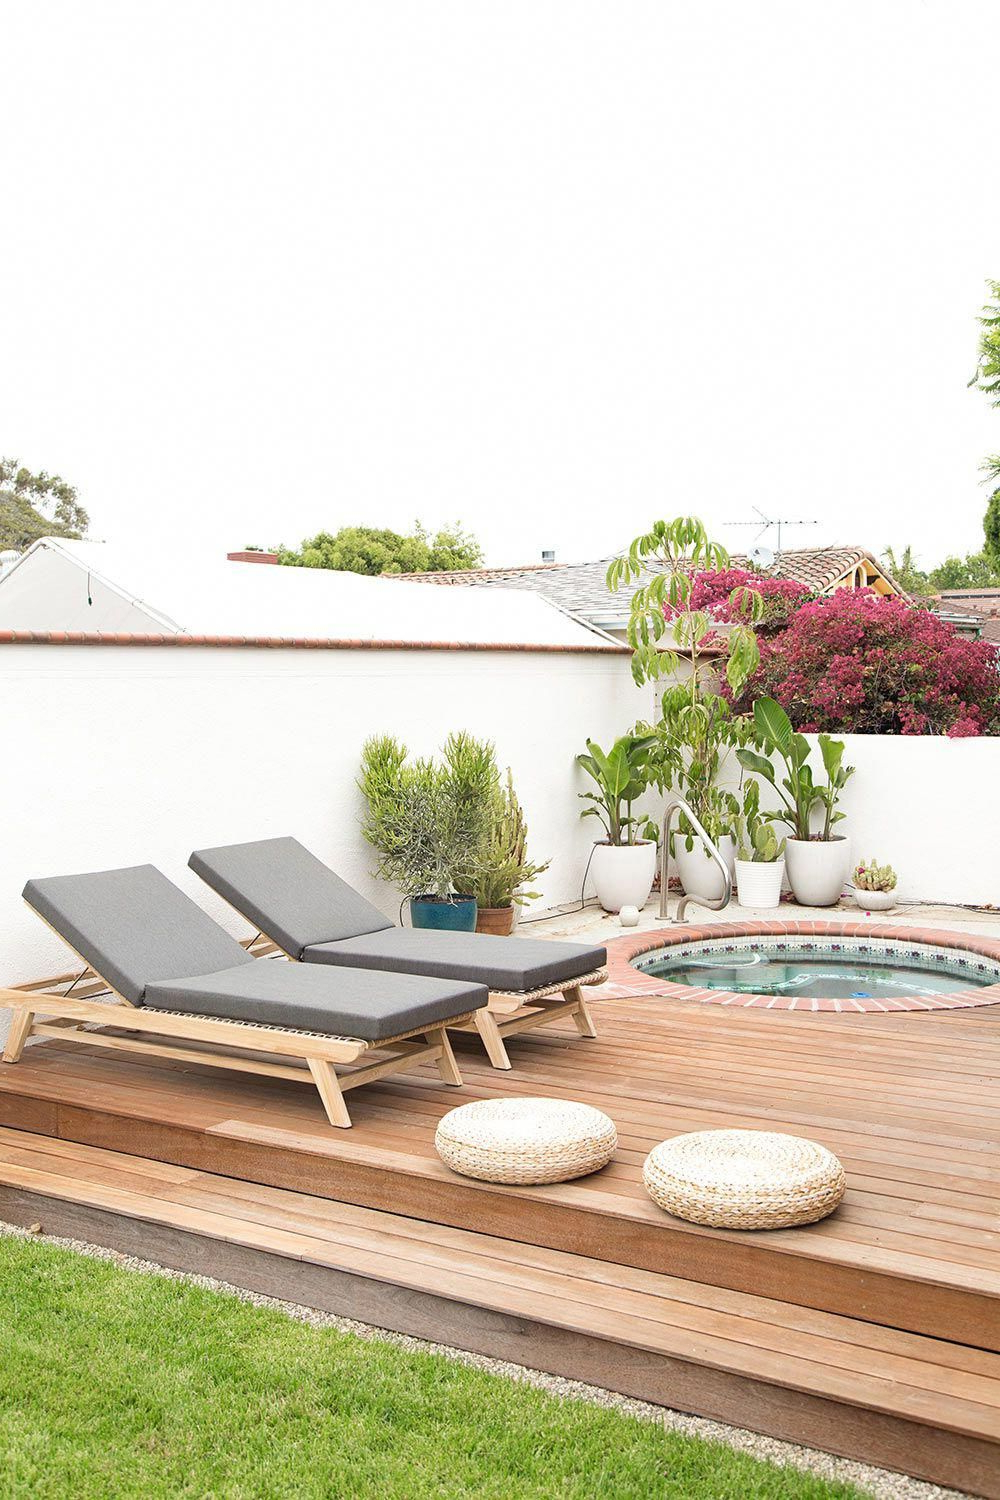 A Zen Oasis In La With Minimalist Mediterranean Roots Within Fashionable Outdoor Living Azusa Sunloungers (View 22 of 25)